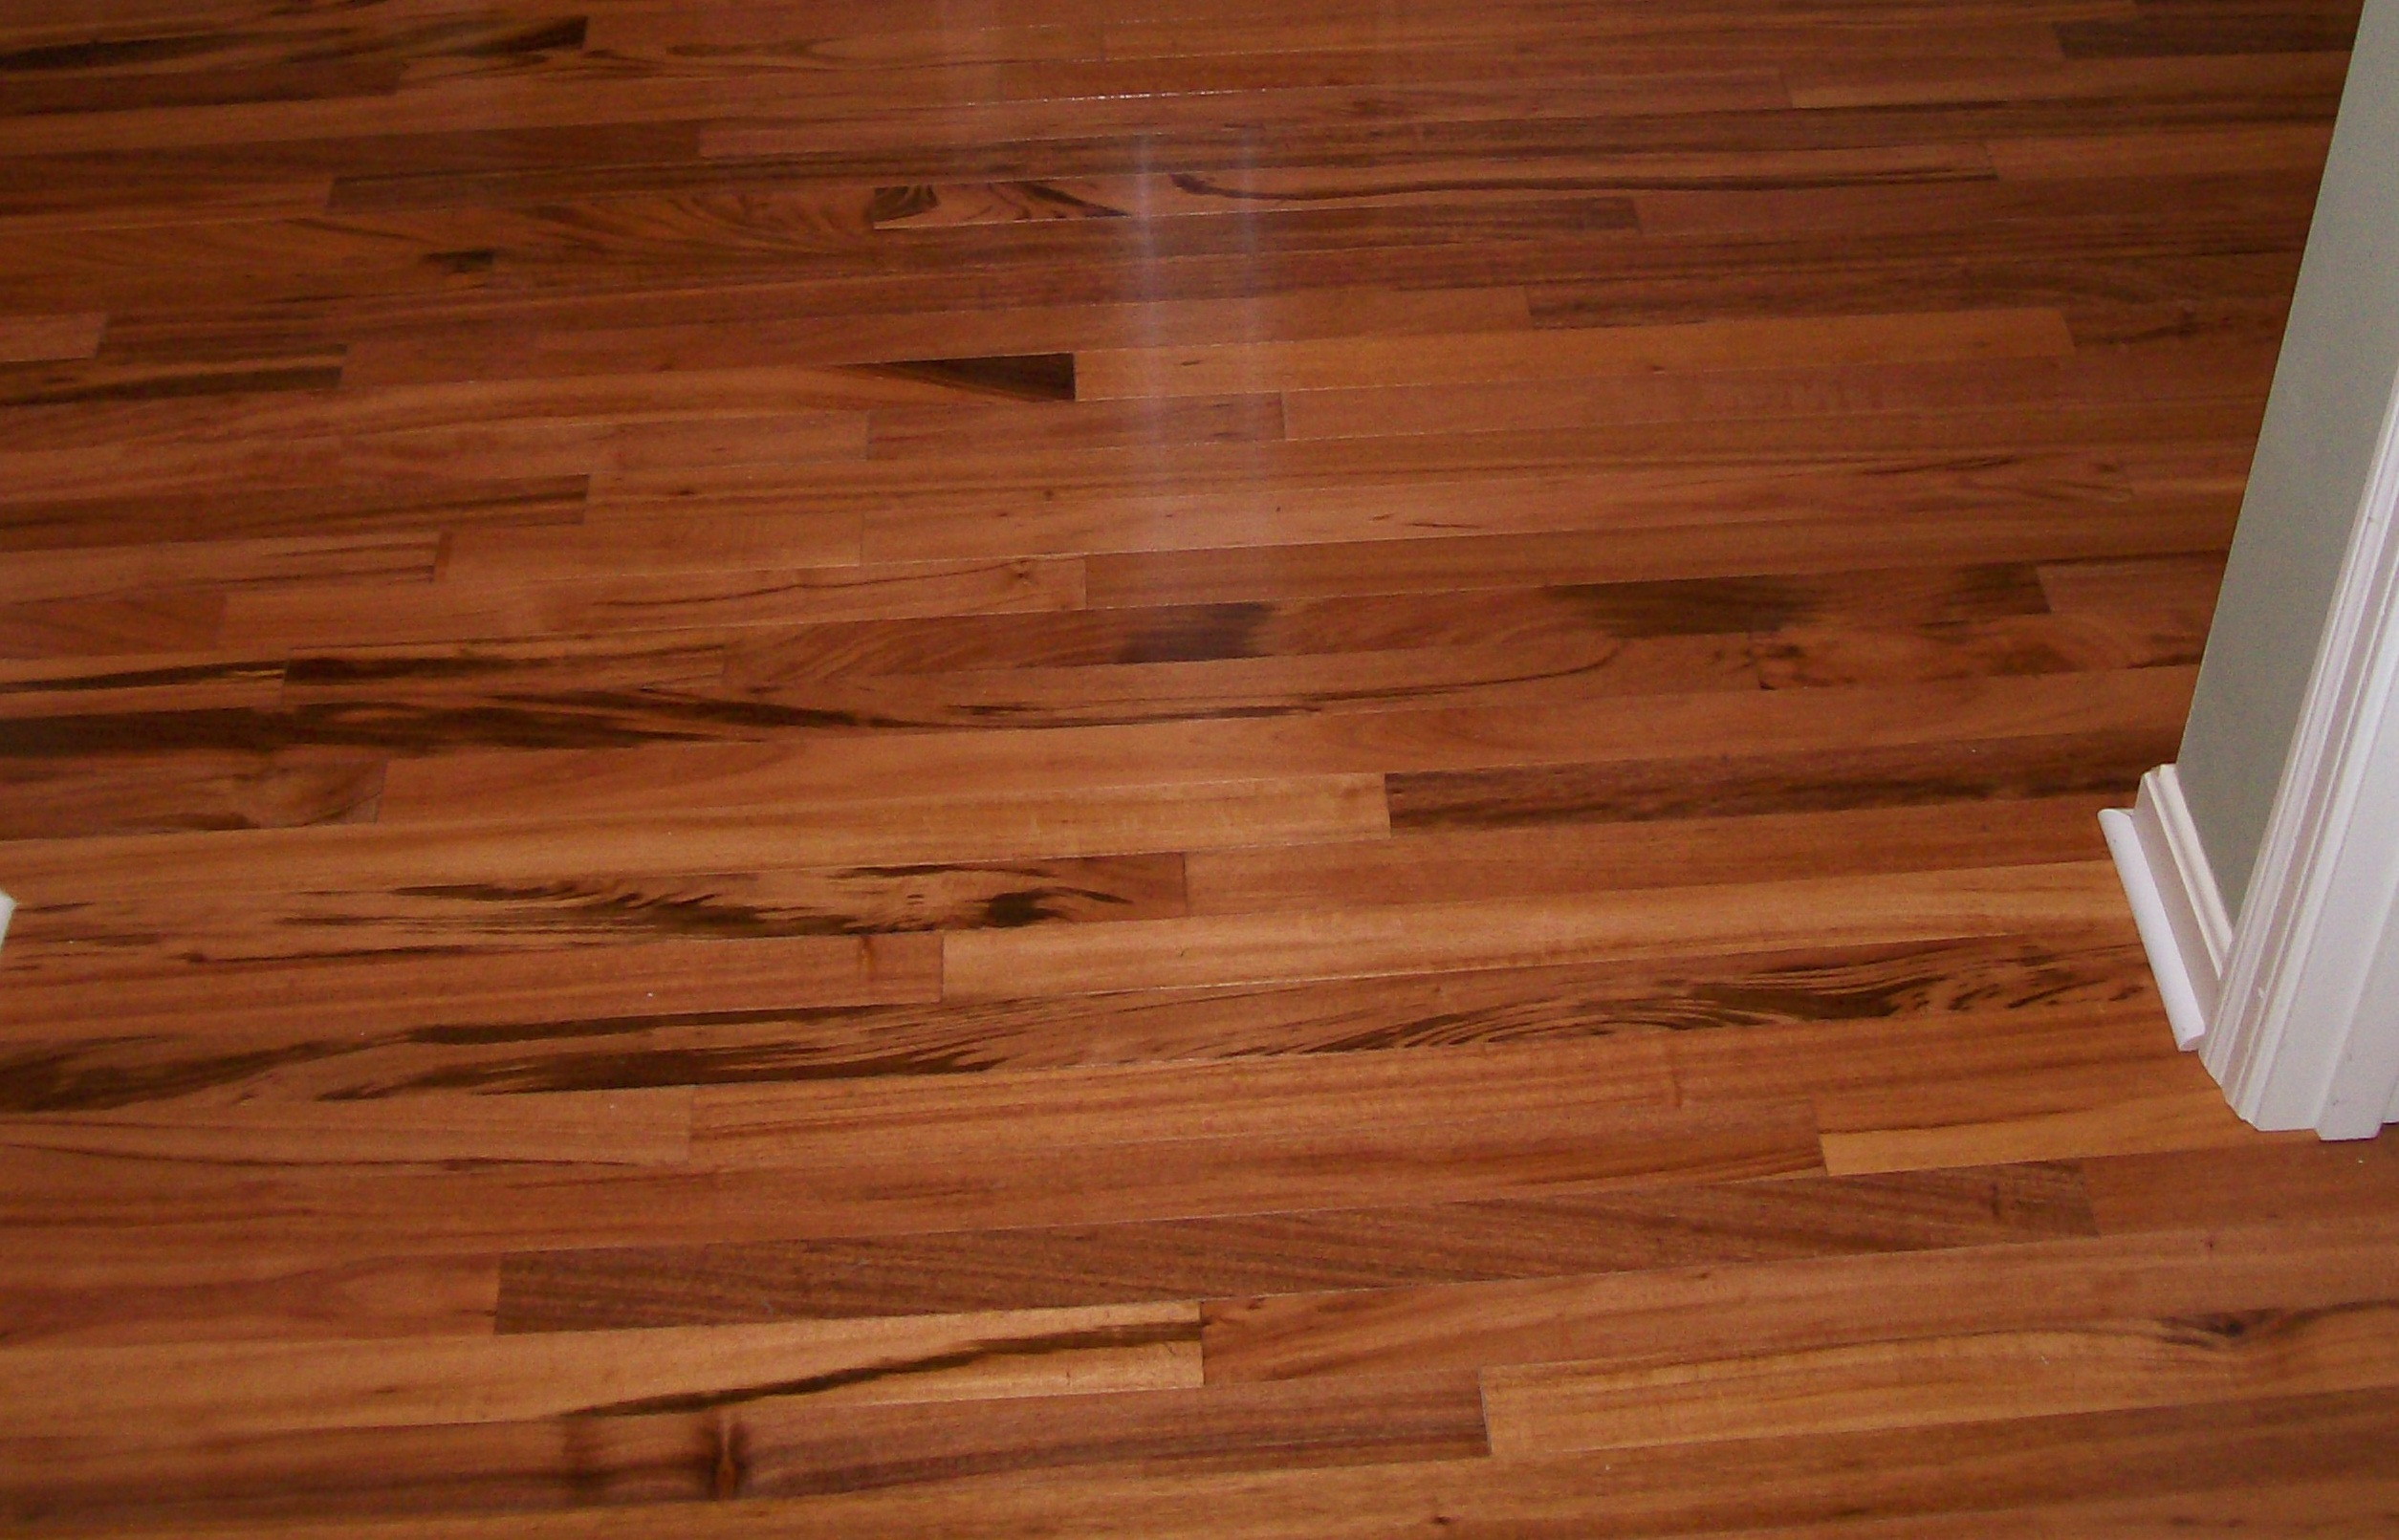 Wood floors in bathroom large and beautiful photos photo to wood floors in bathroom dailygadgetfo Images